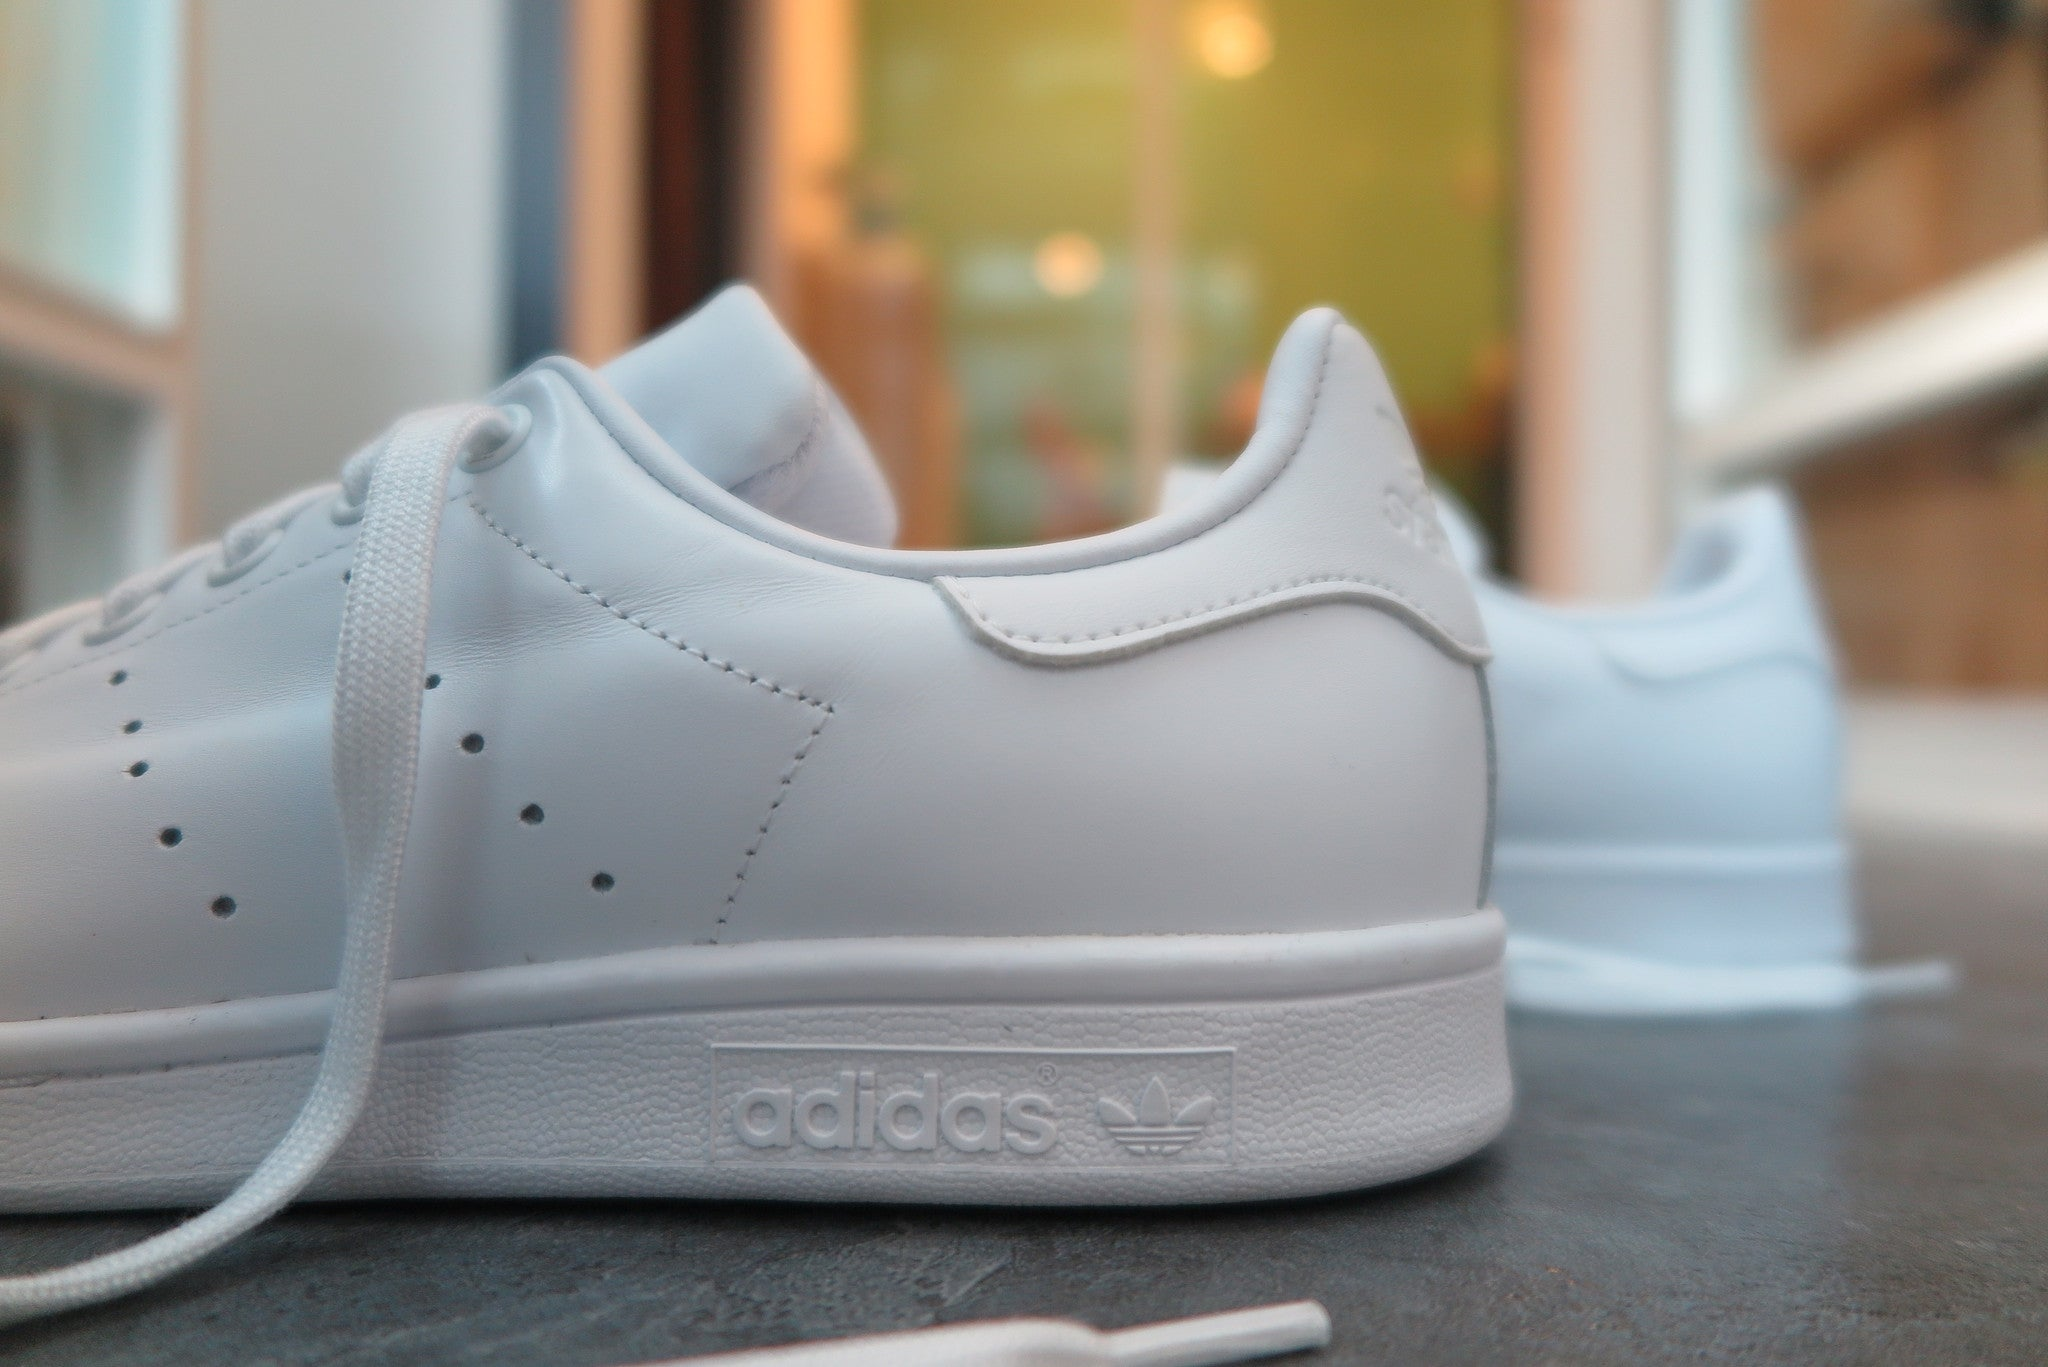 adidas Stan Smith - Footwear White #S75104-Preorder Item-Navy Selected Shop